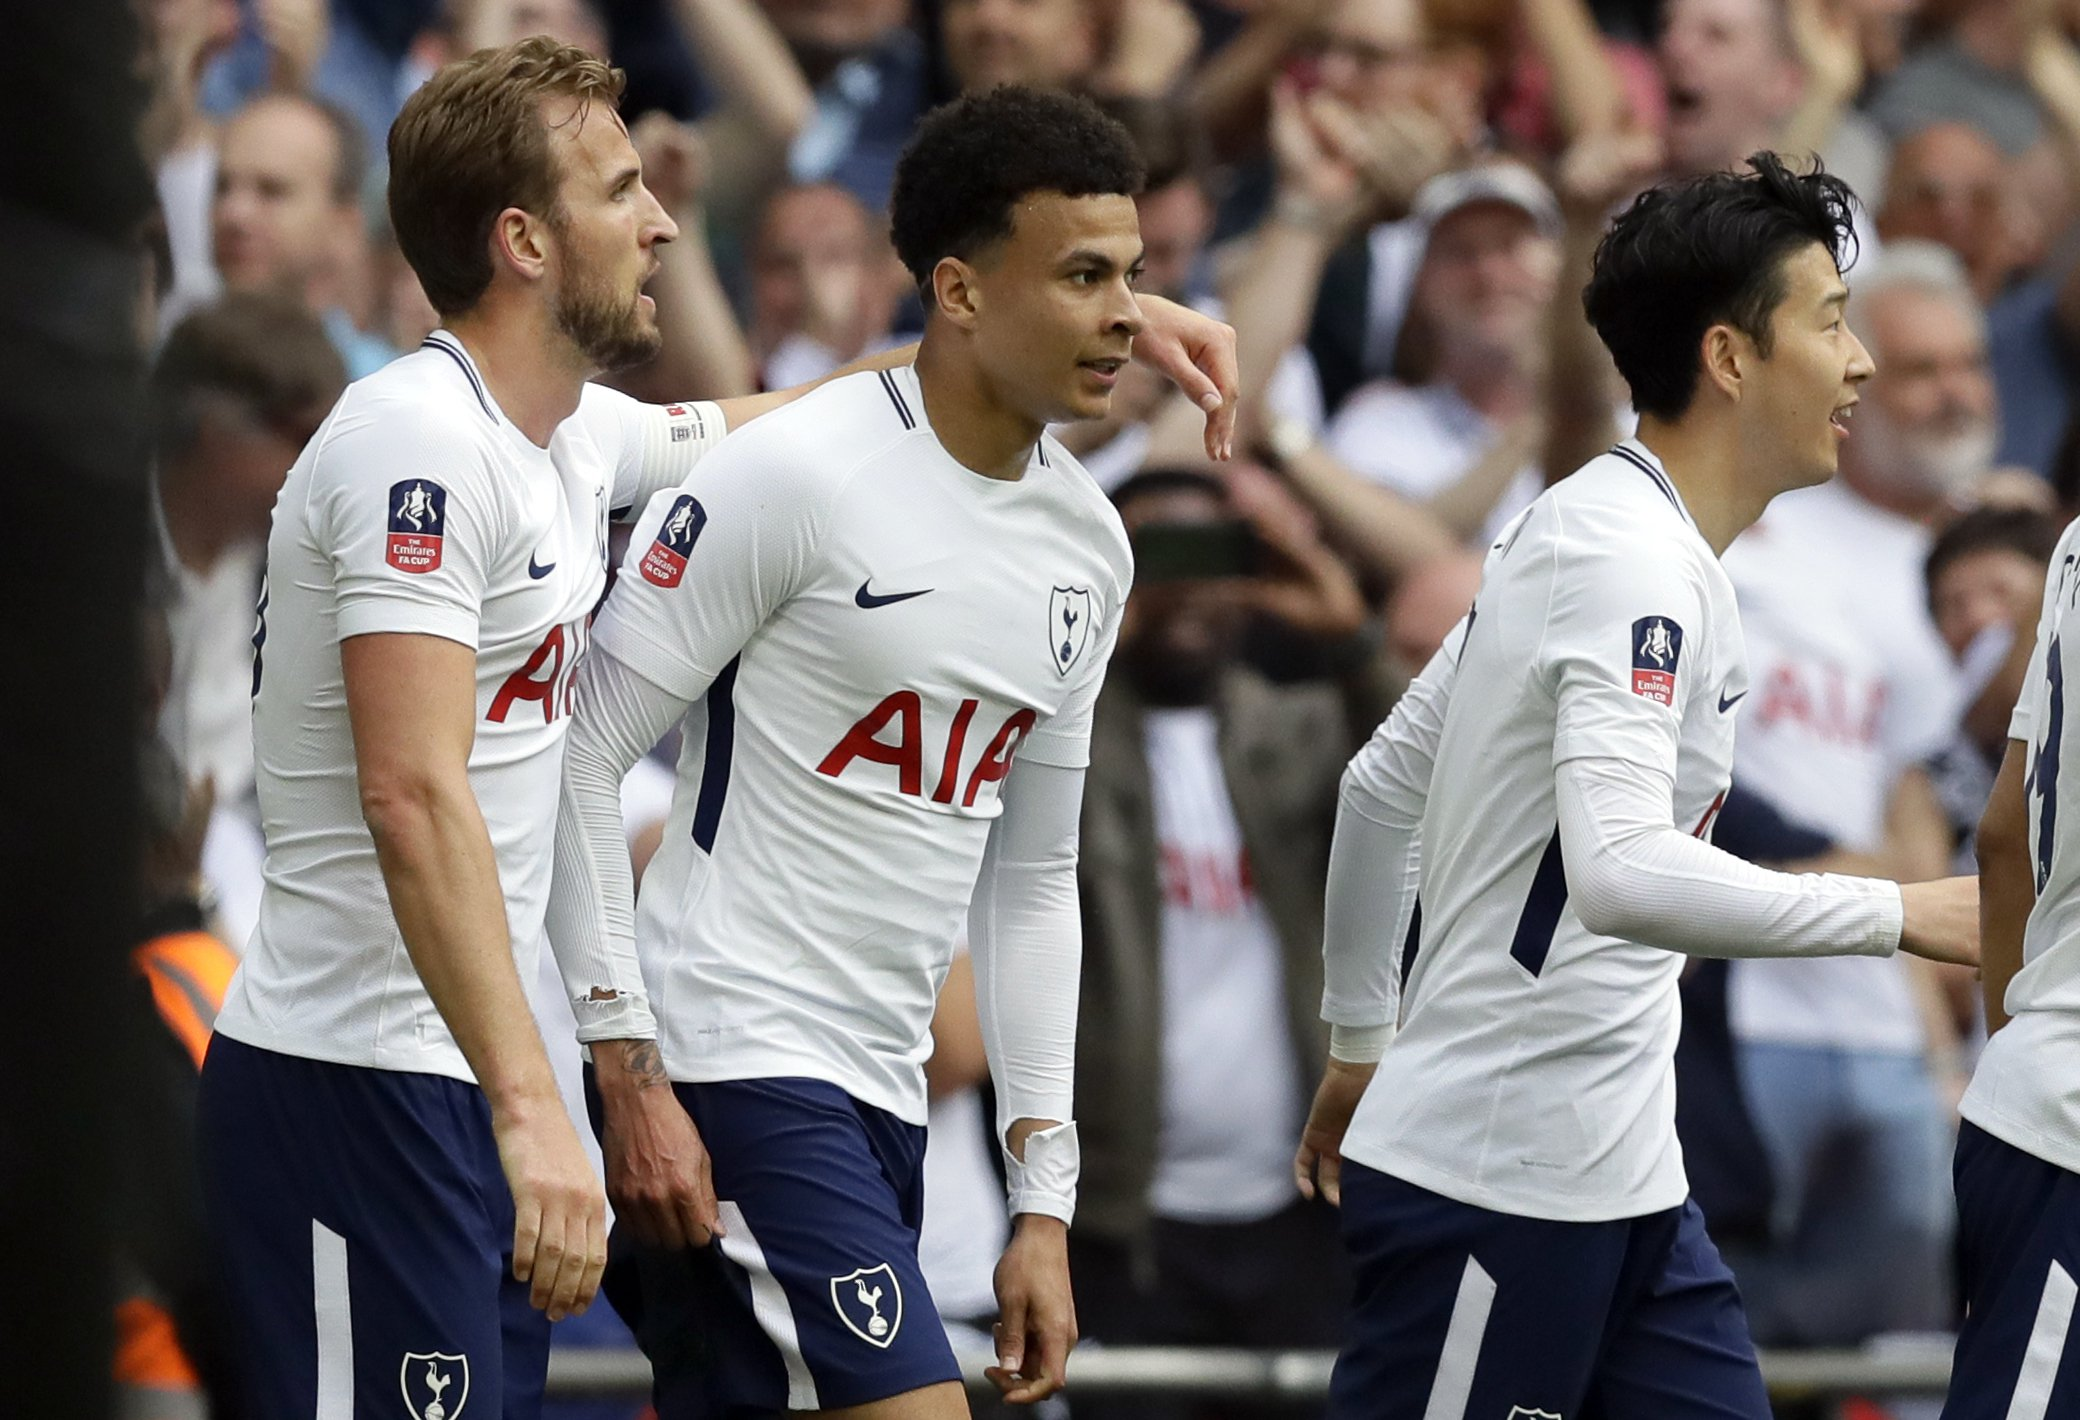 Tottenham's Dele Alli, center, celebrates with Harry Kane, left, and Son Heung-min after scoring the opening goal during the English FA Cup semifinal soccer match between Manchester United and Tottenham Hotspur at Wembley stadium in London, Saturday, April 21, 2018. (AP Photo/Kirsty Wigglesworth)